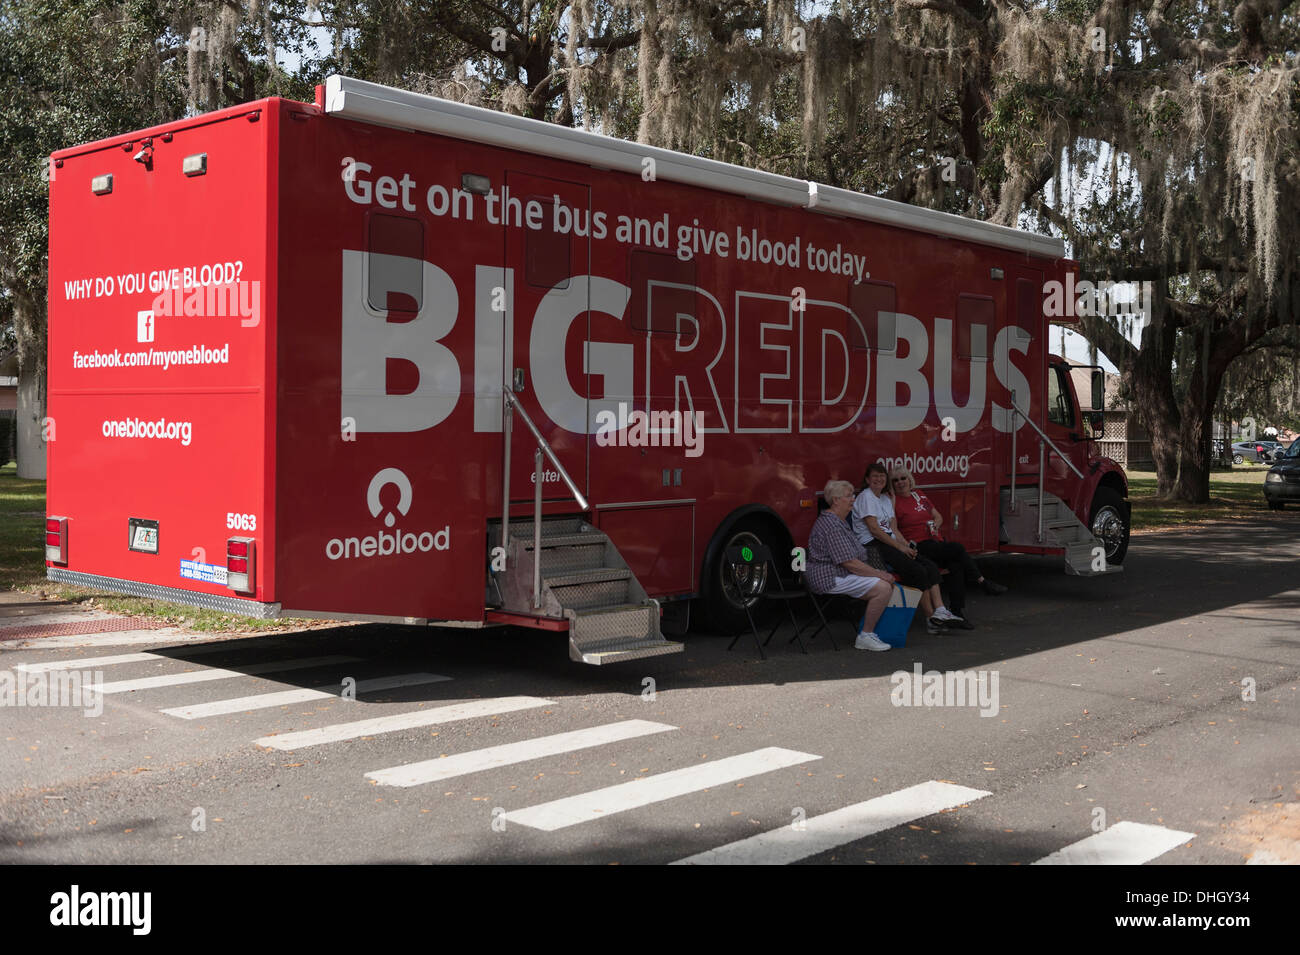 Big Red Bus on a blood drive in Central Florida USA - Stock Image